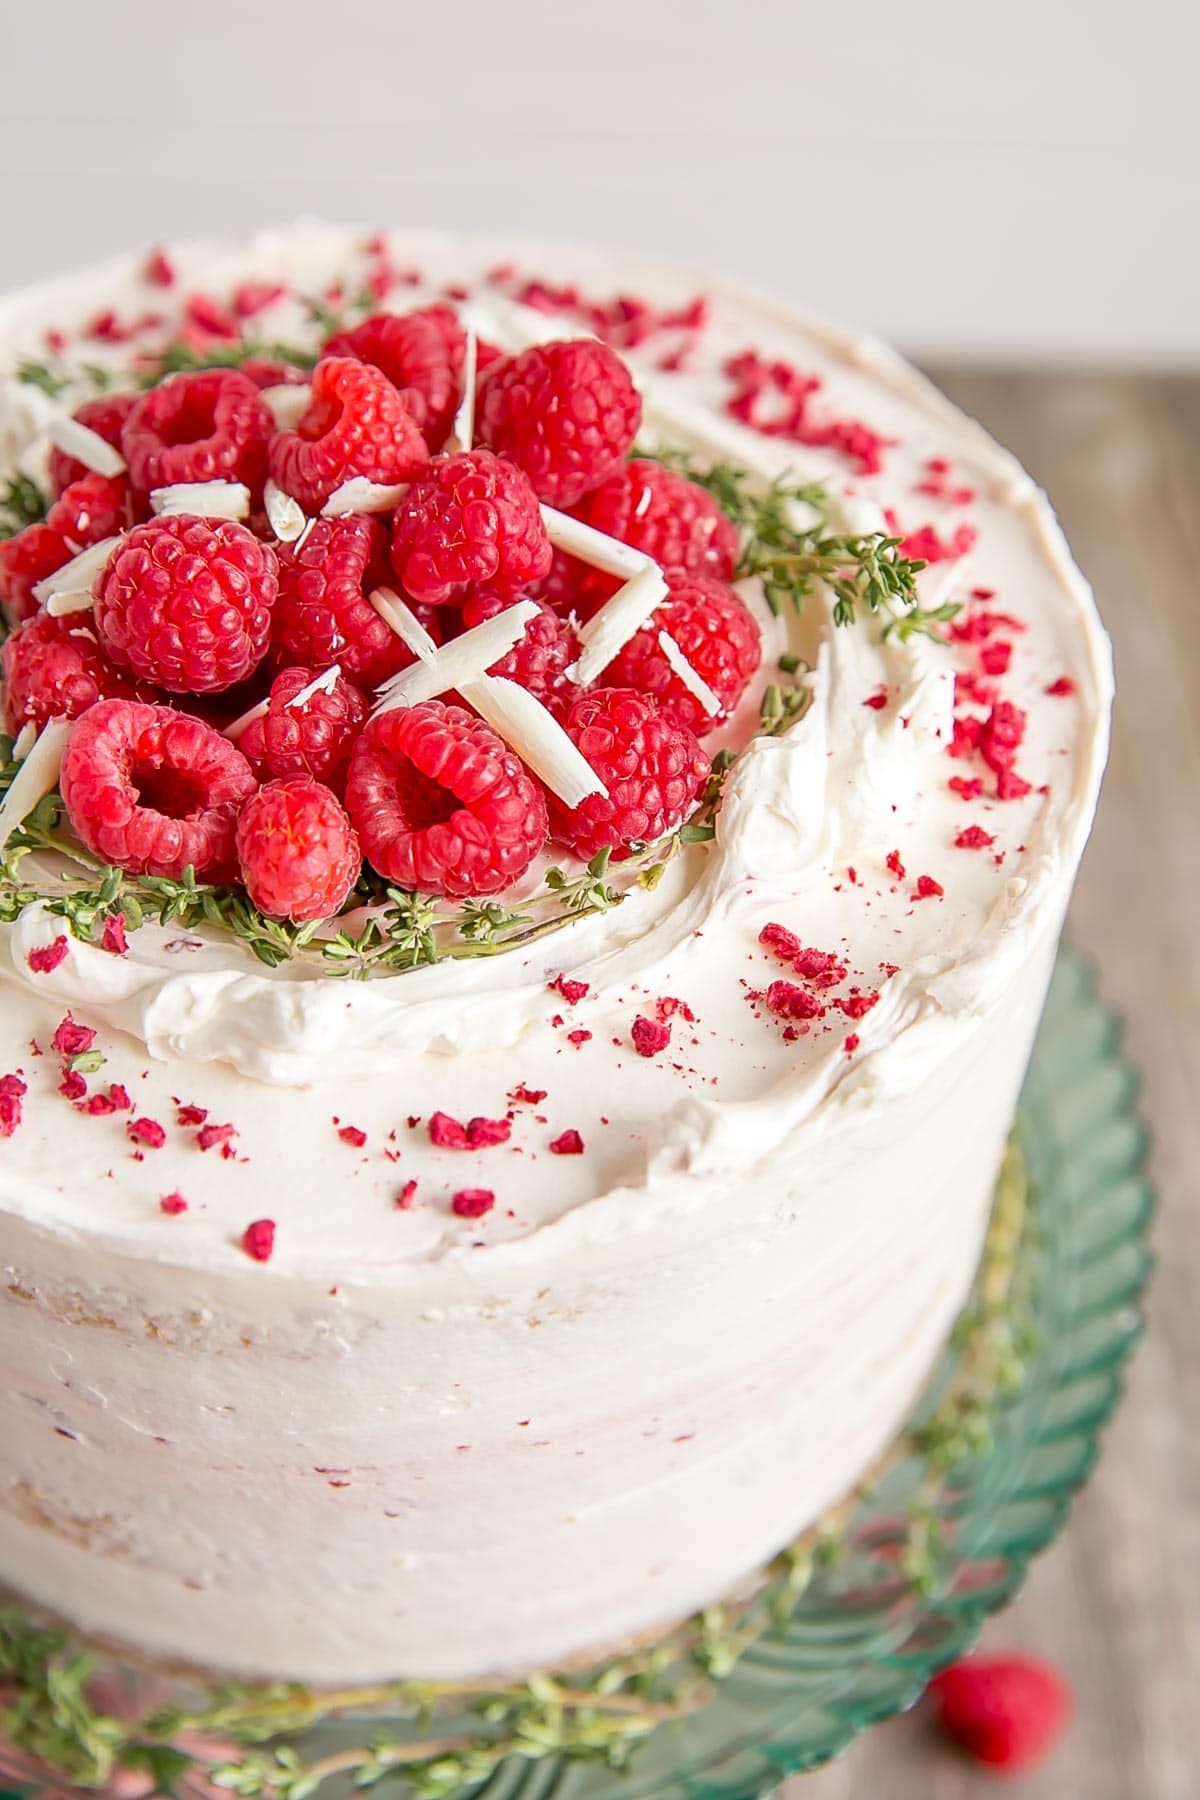 Close up of fresh raspberries on top of a white chocolate cake